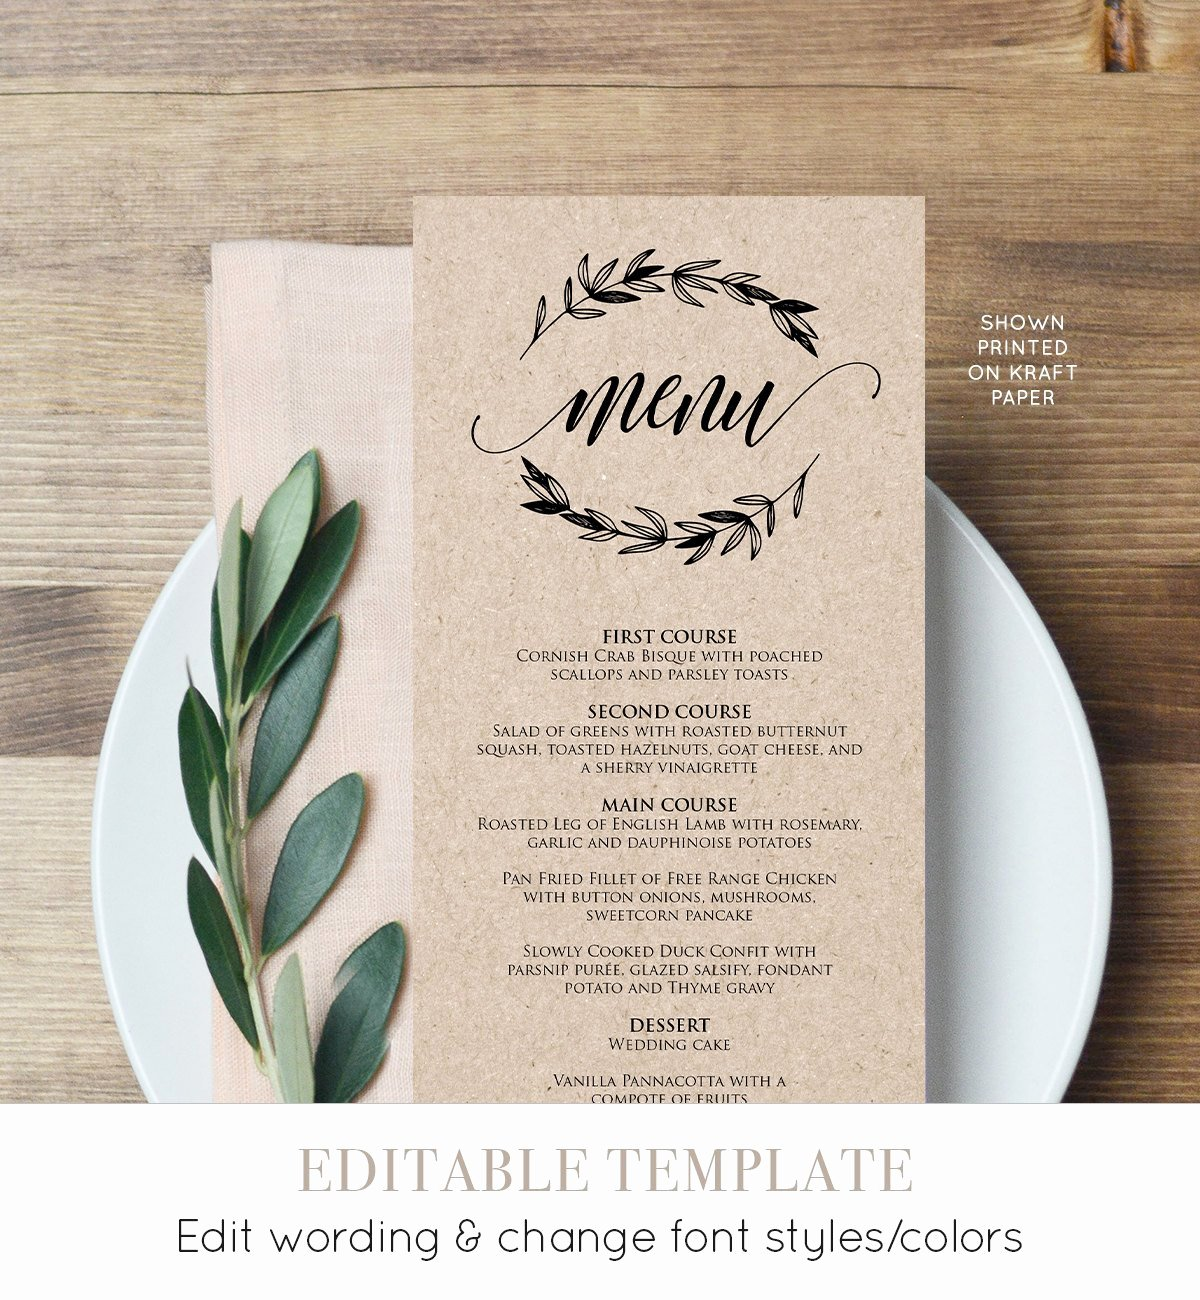 Wedding Menu Card Template Beautiful Rustic Wedding Menu Template Printable Menu Card